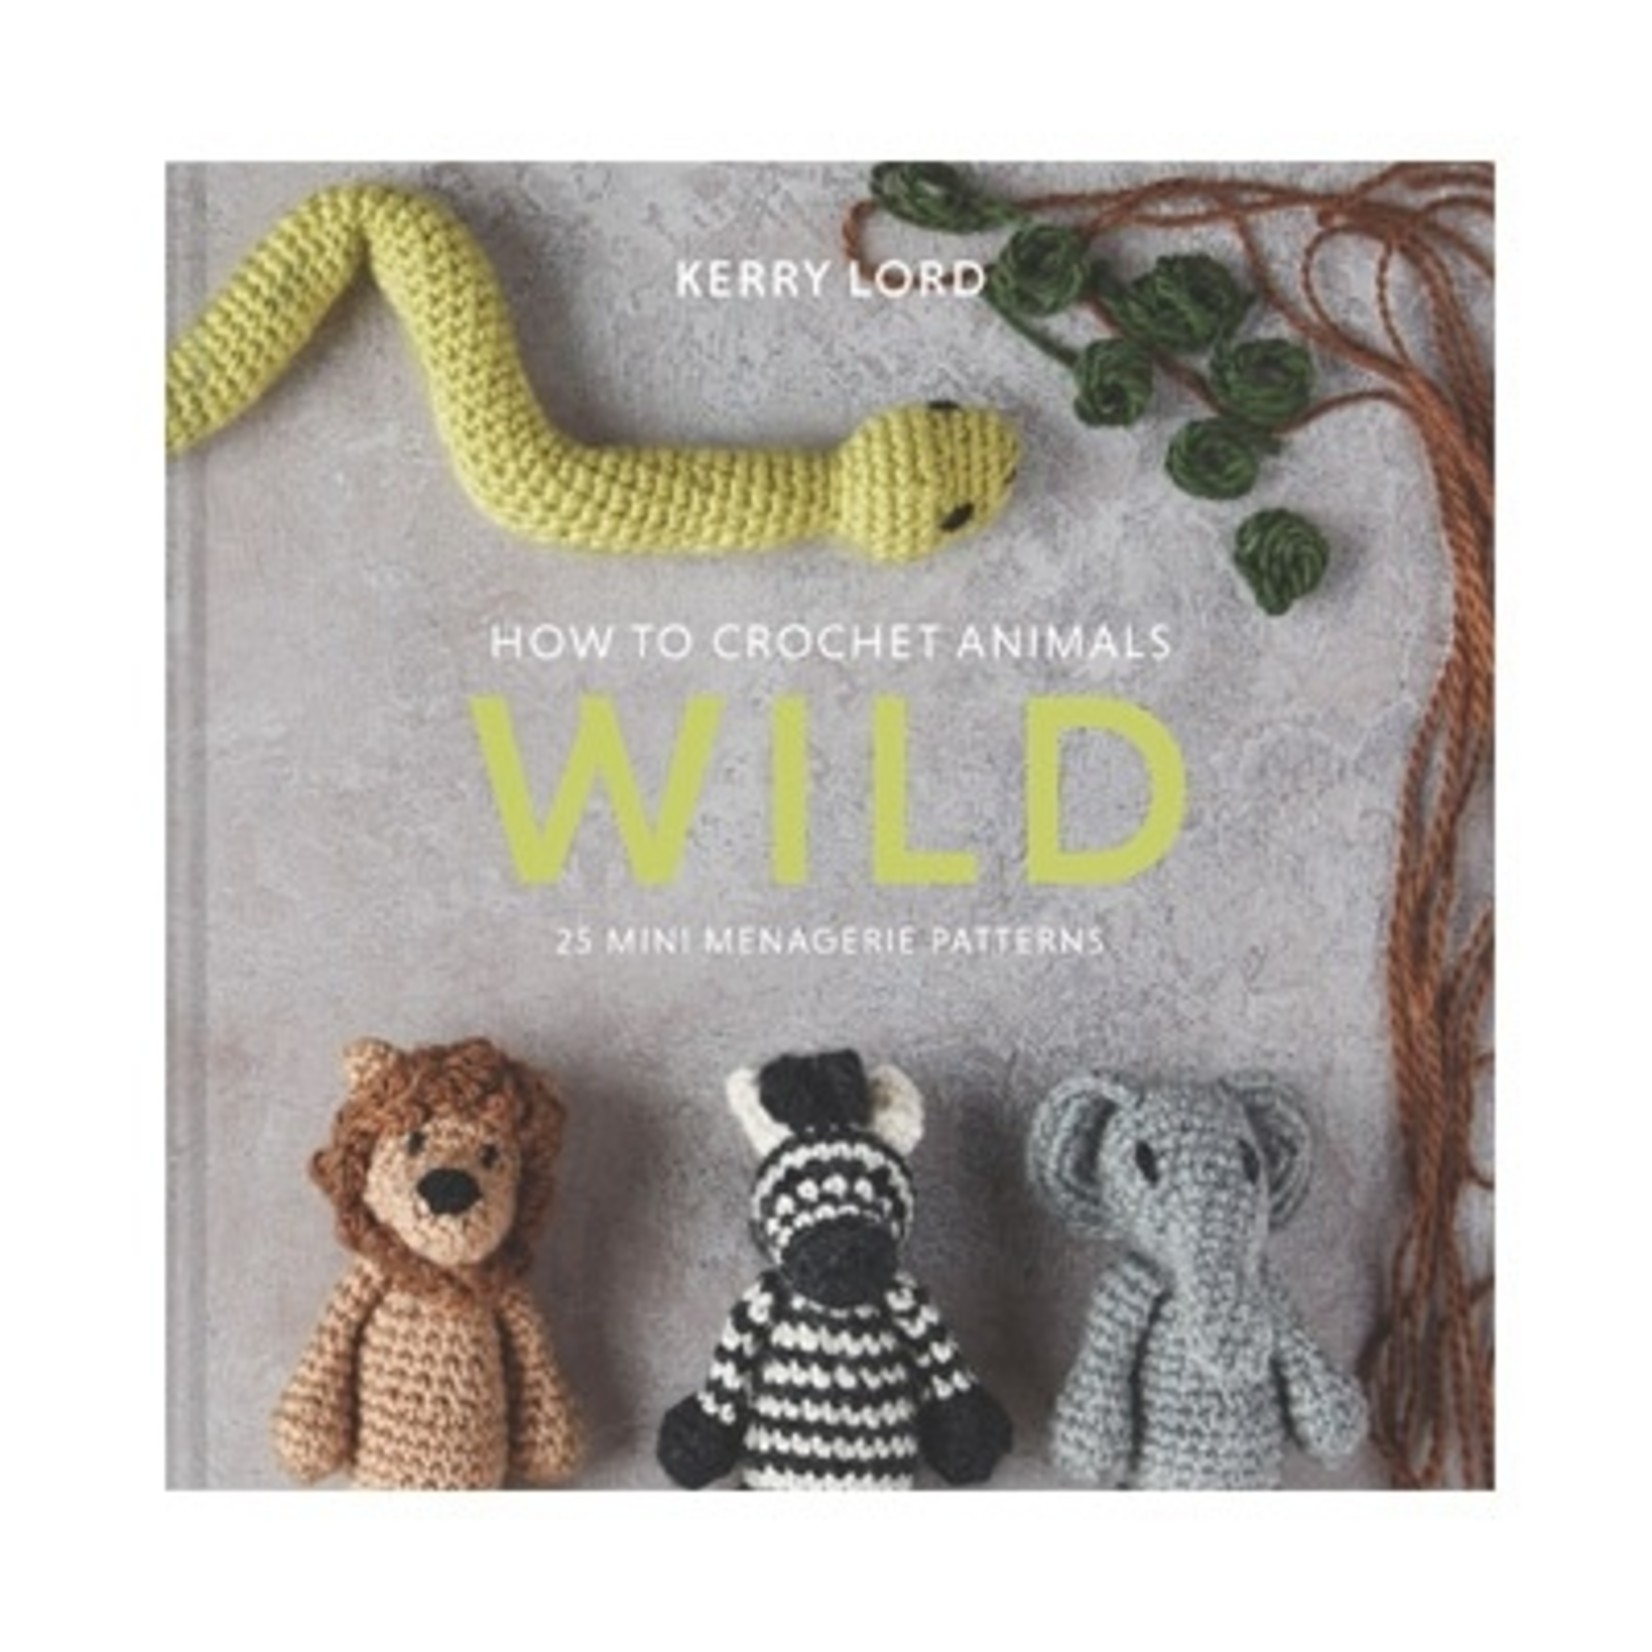 How To Crochet Animals - Kerry Lord